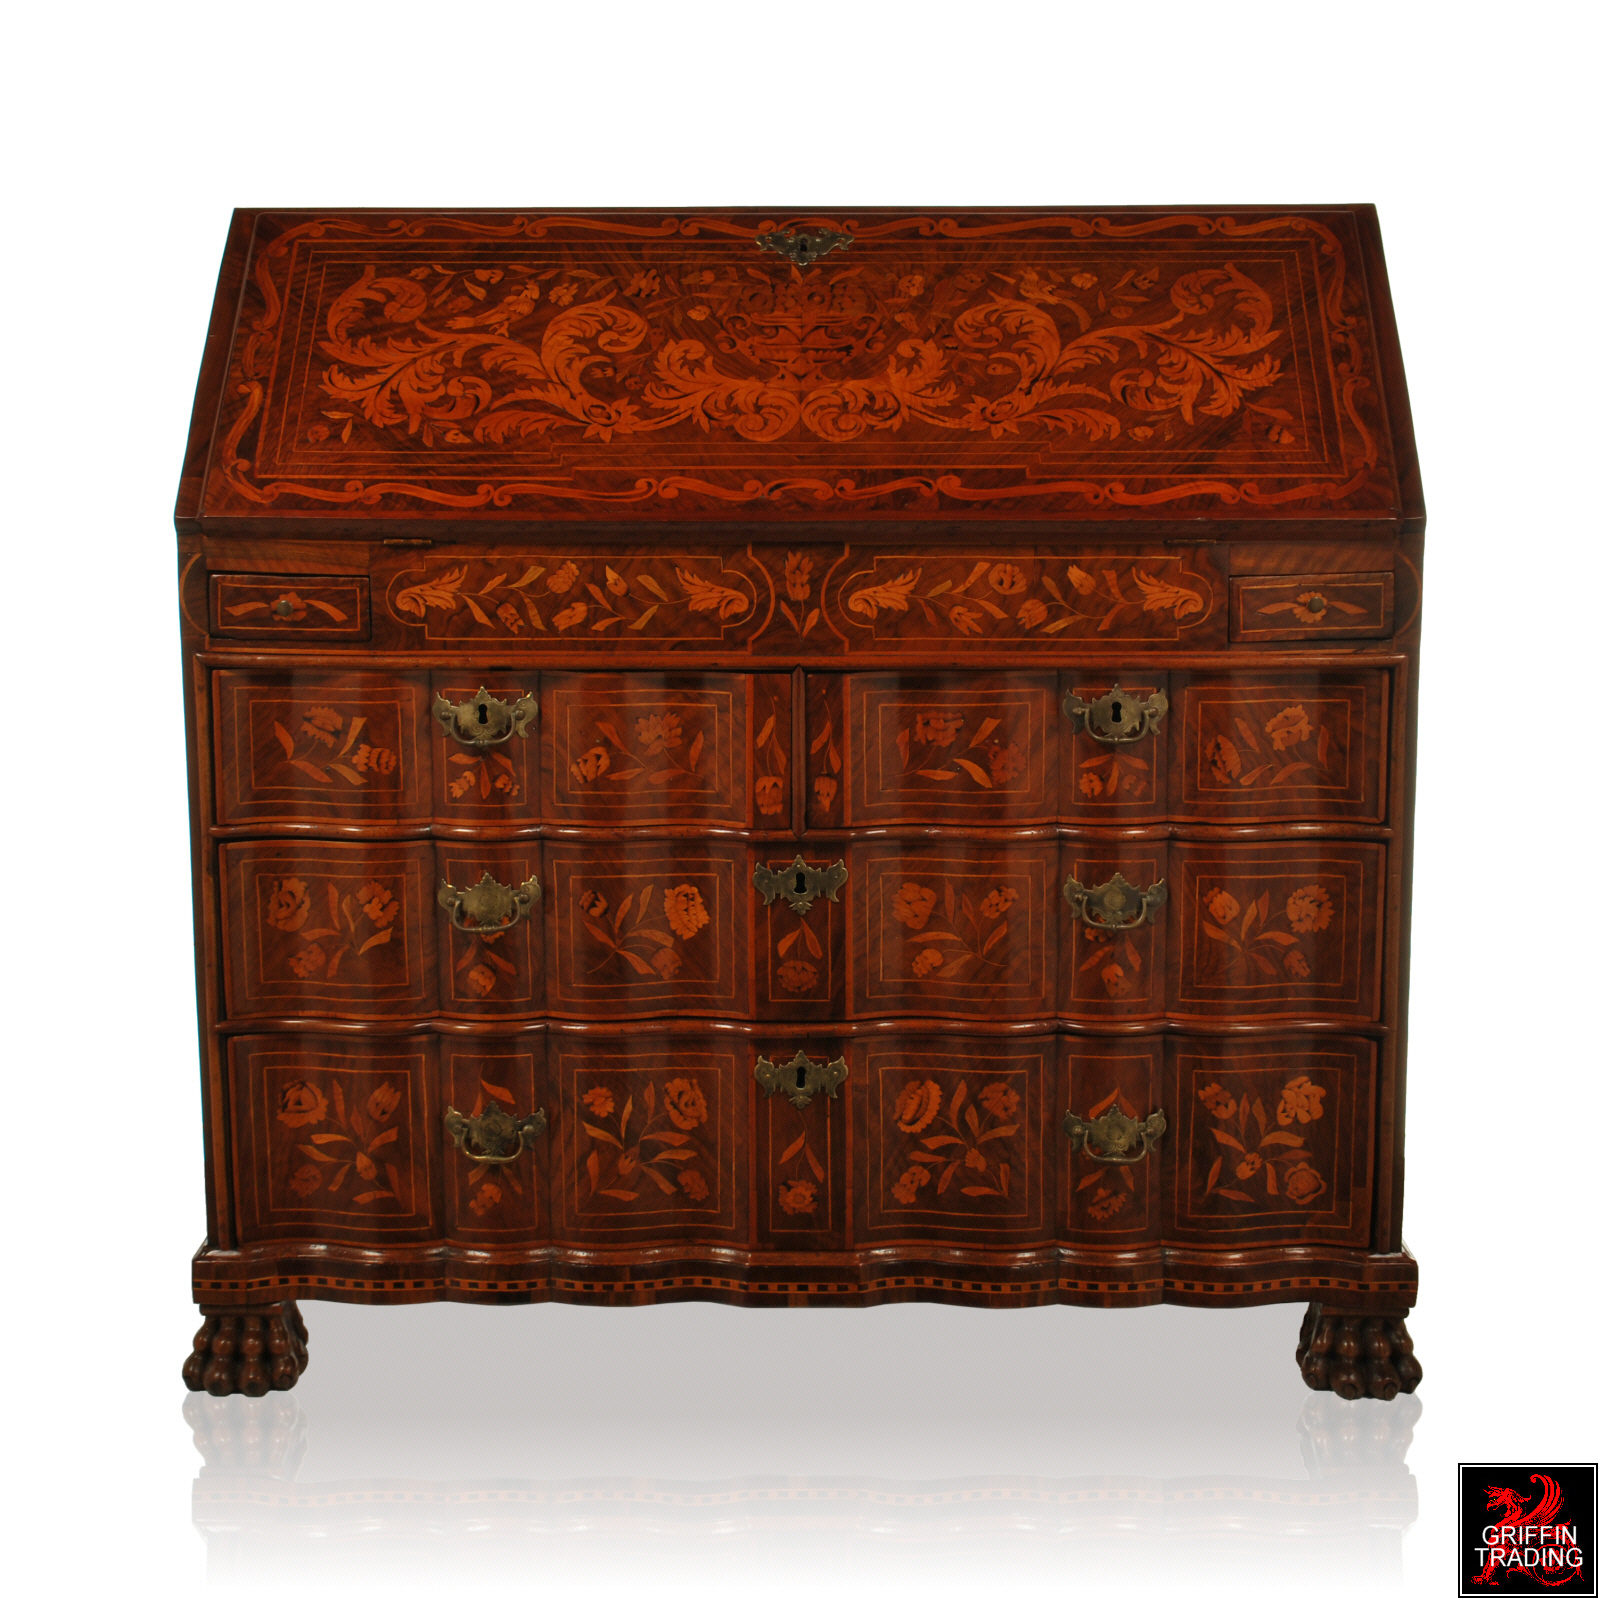 This Splendid Walnut Drop Front Desk Secretary Secretaire Bureau Dates Around The 1780 S And Is Completely Covered With A Beautiful Fl Urn